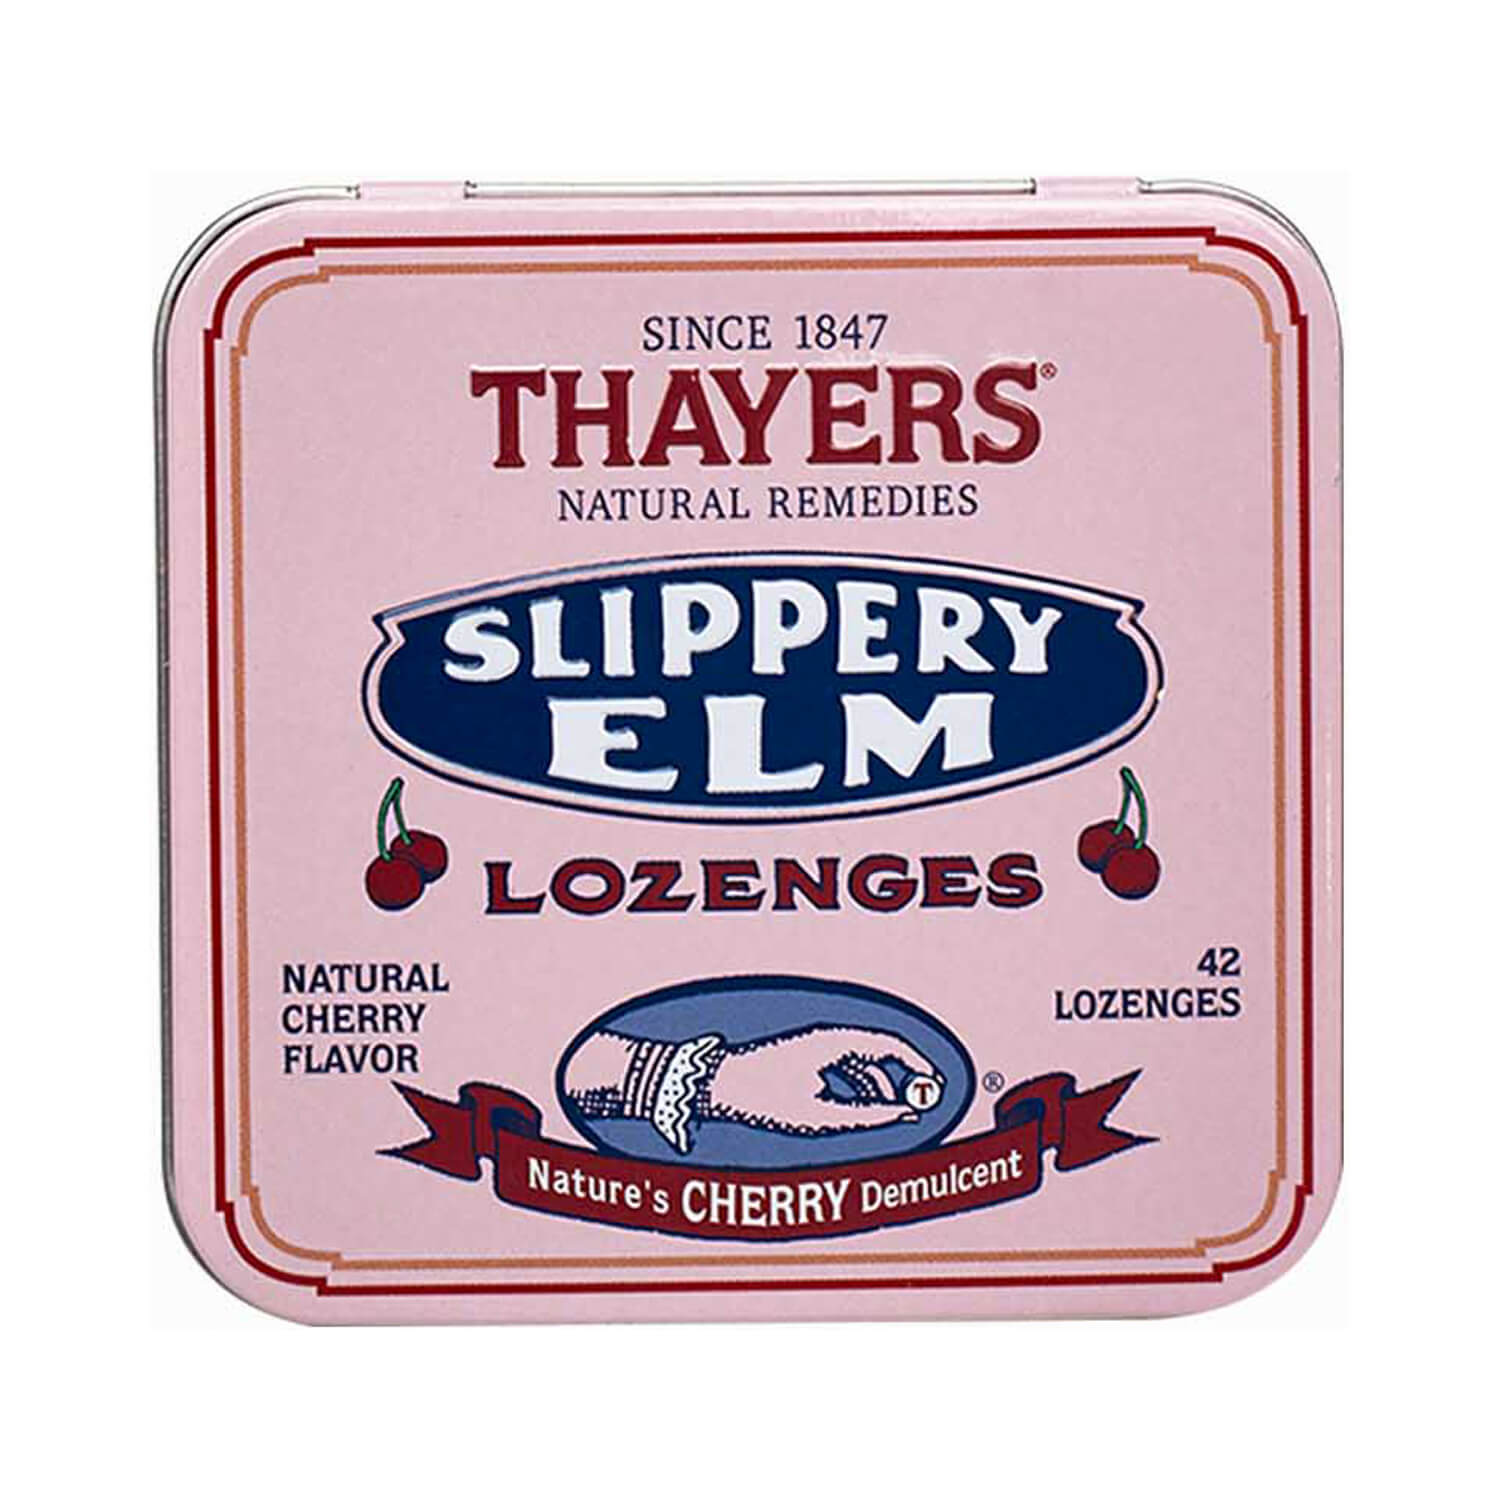 Thayers Cherry Slippery Elm Lozenges 42 Ct